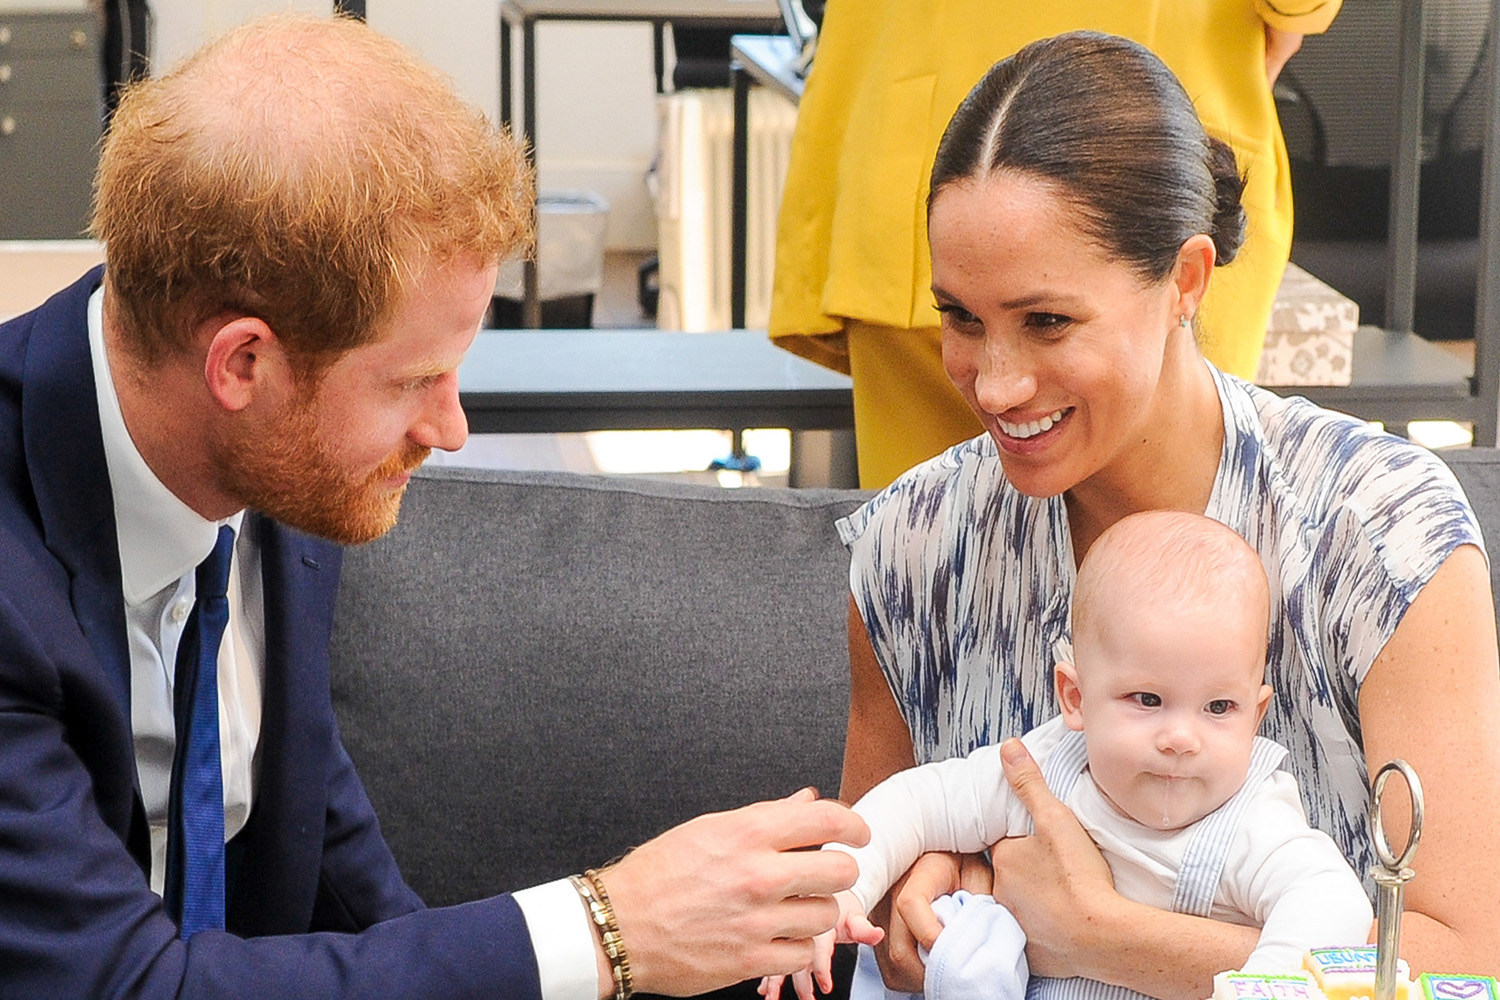 Harry and Meghan will release new photo of Archie to mark his first birthday